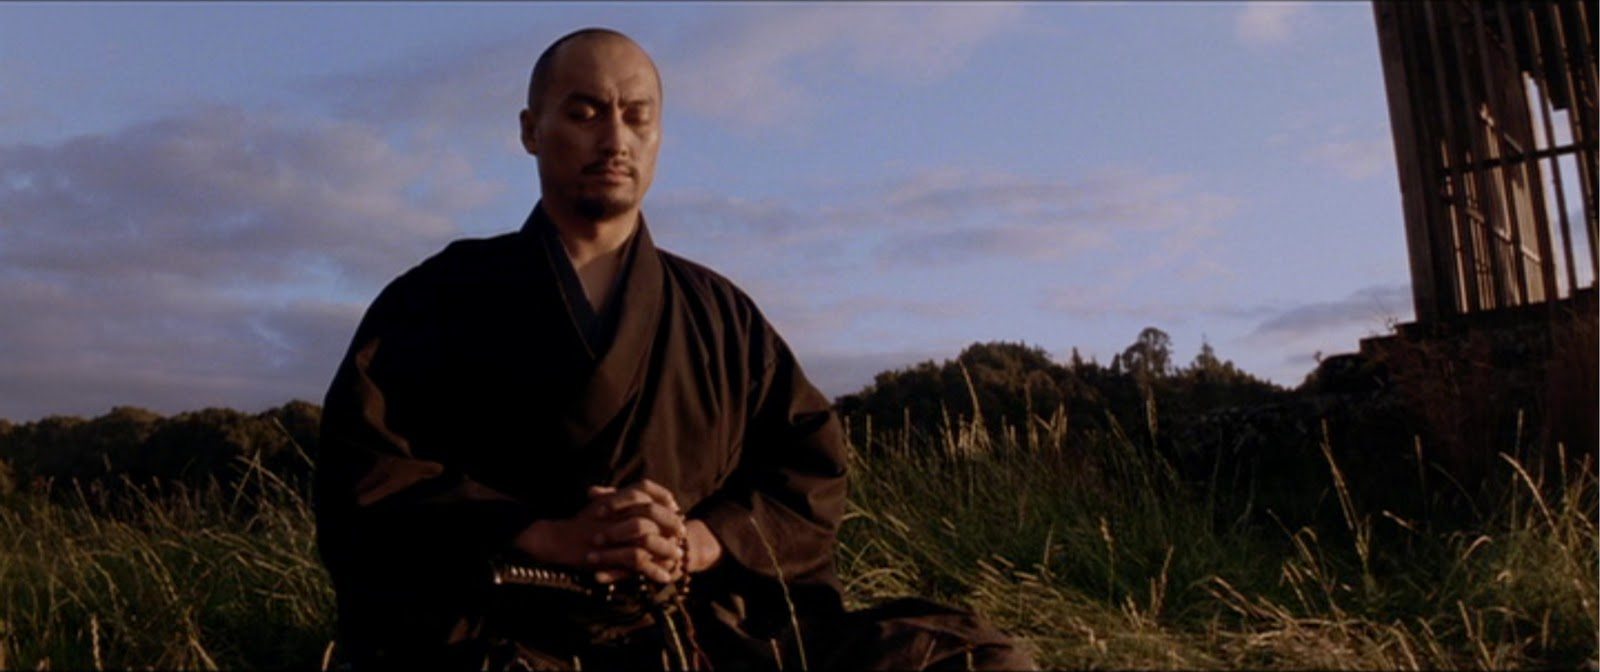 what is great cinema the last samurai and the mighty whitey the last samurai and the mighty whitey